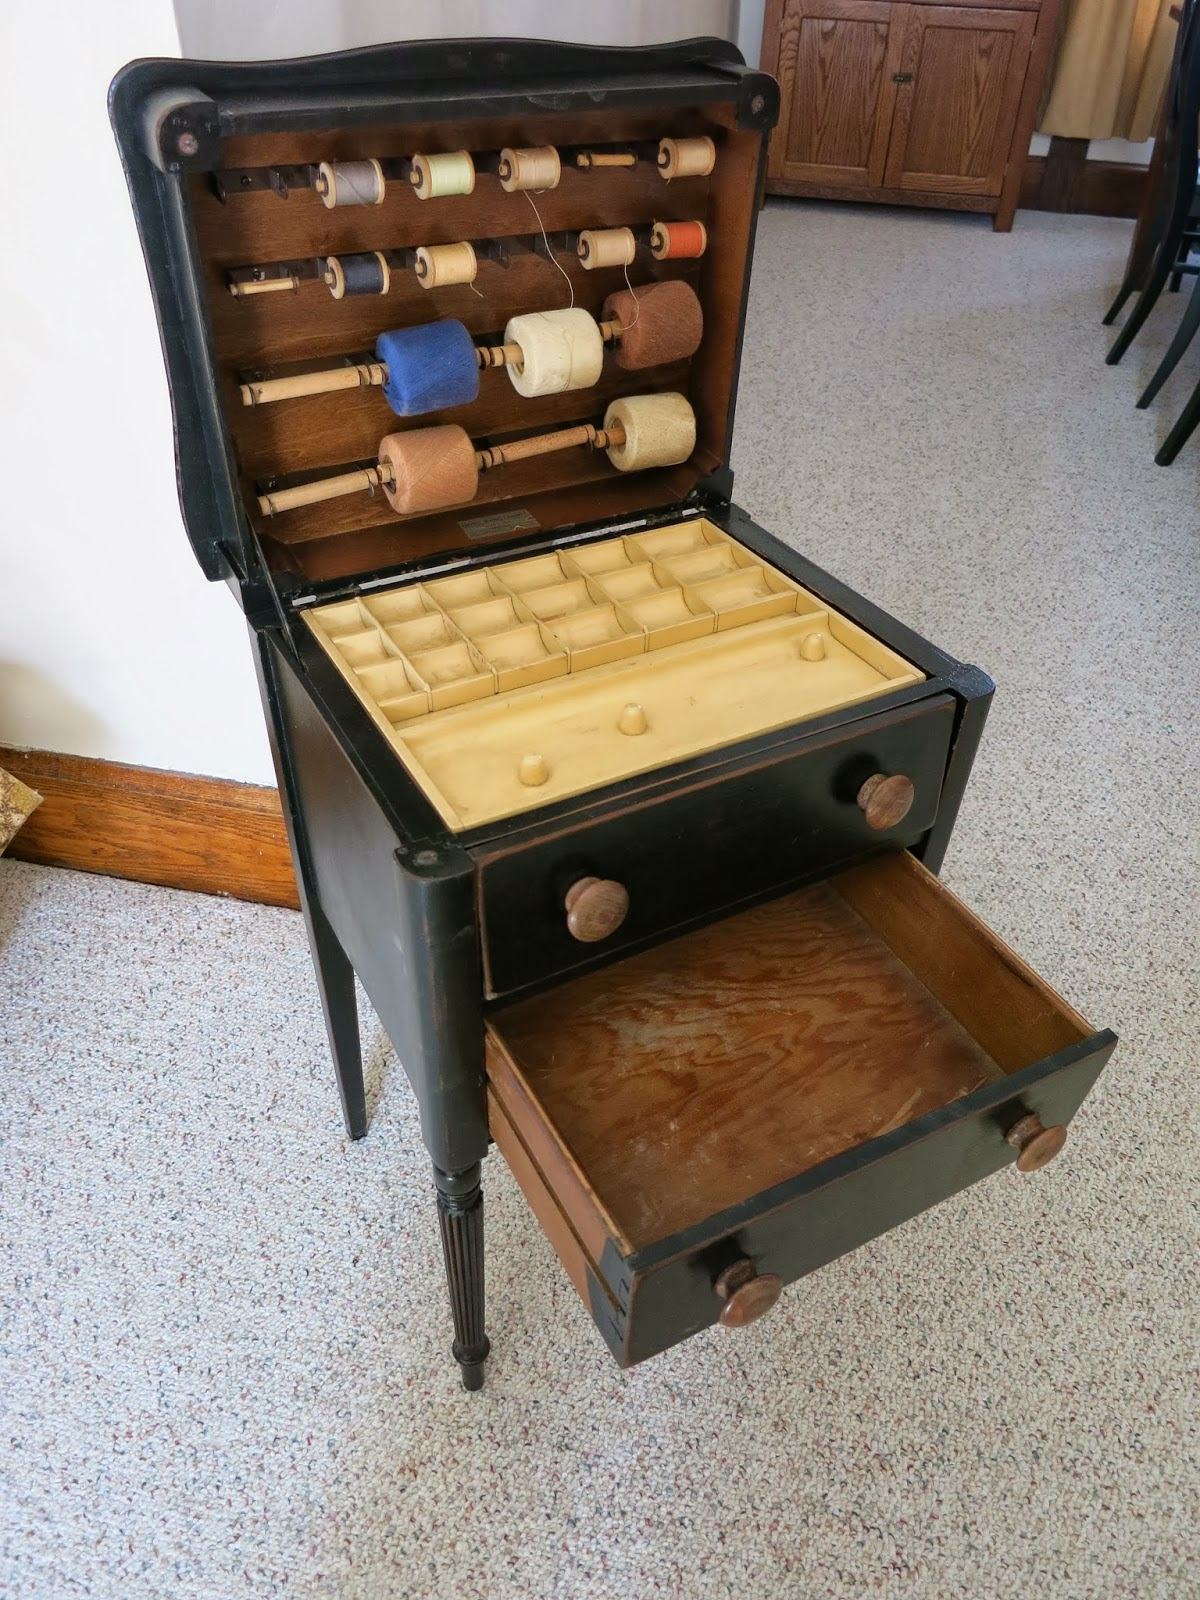 The Cabinet Was Made By Caswell Runyan Co In Huntington Indiana Which Operation Between 1907 And 1956